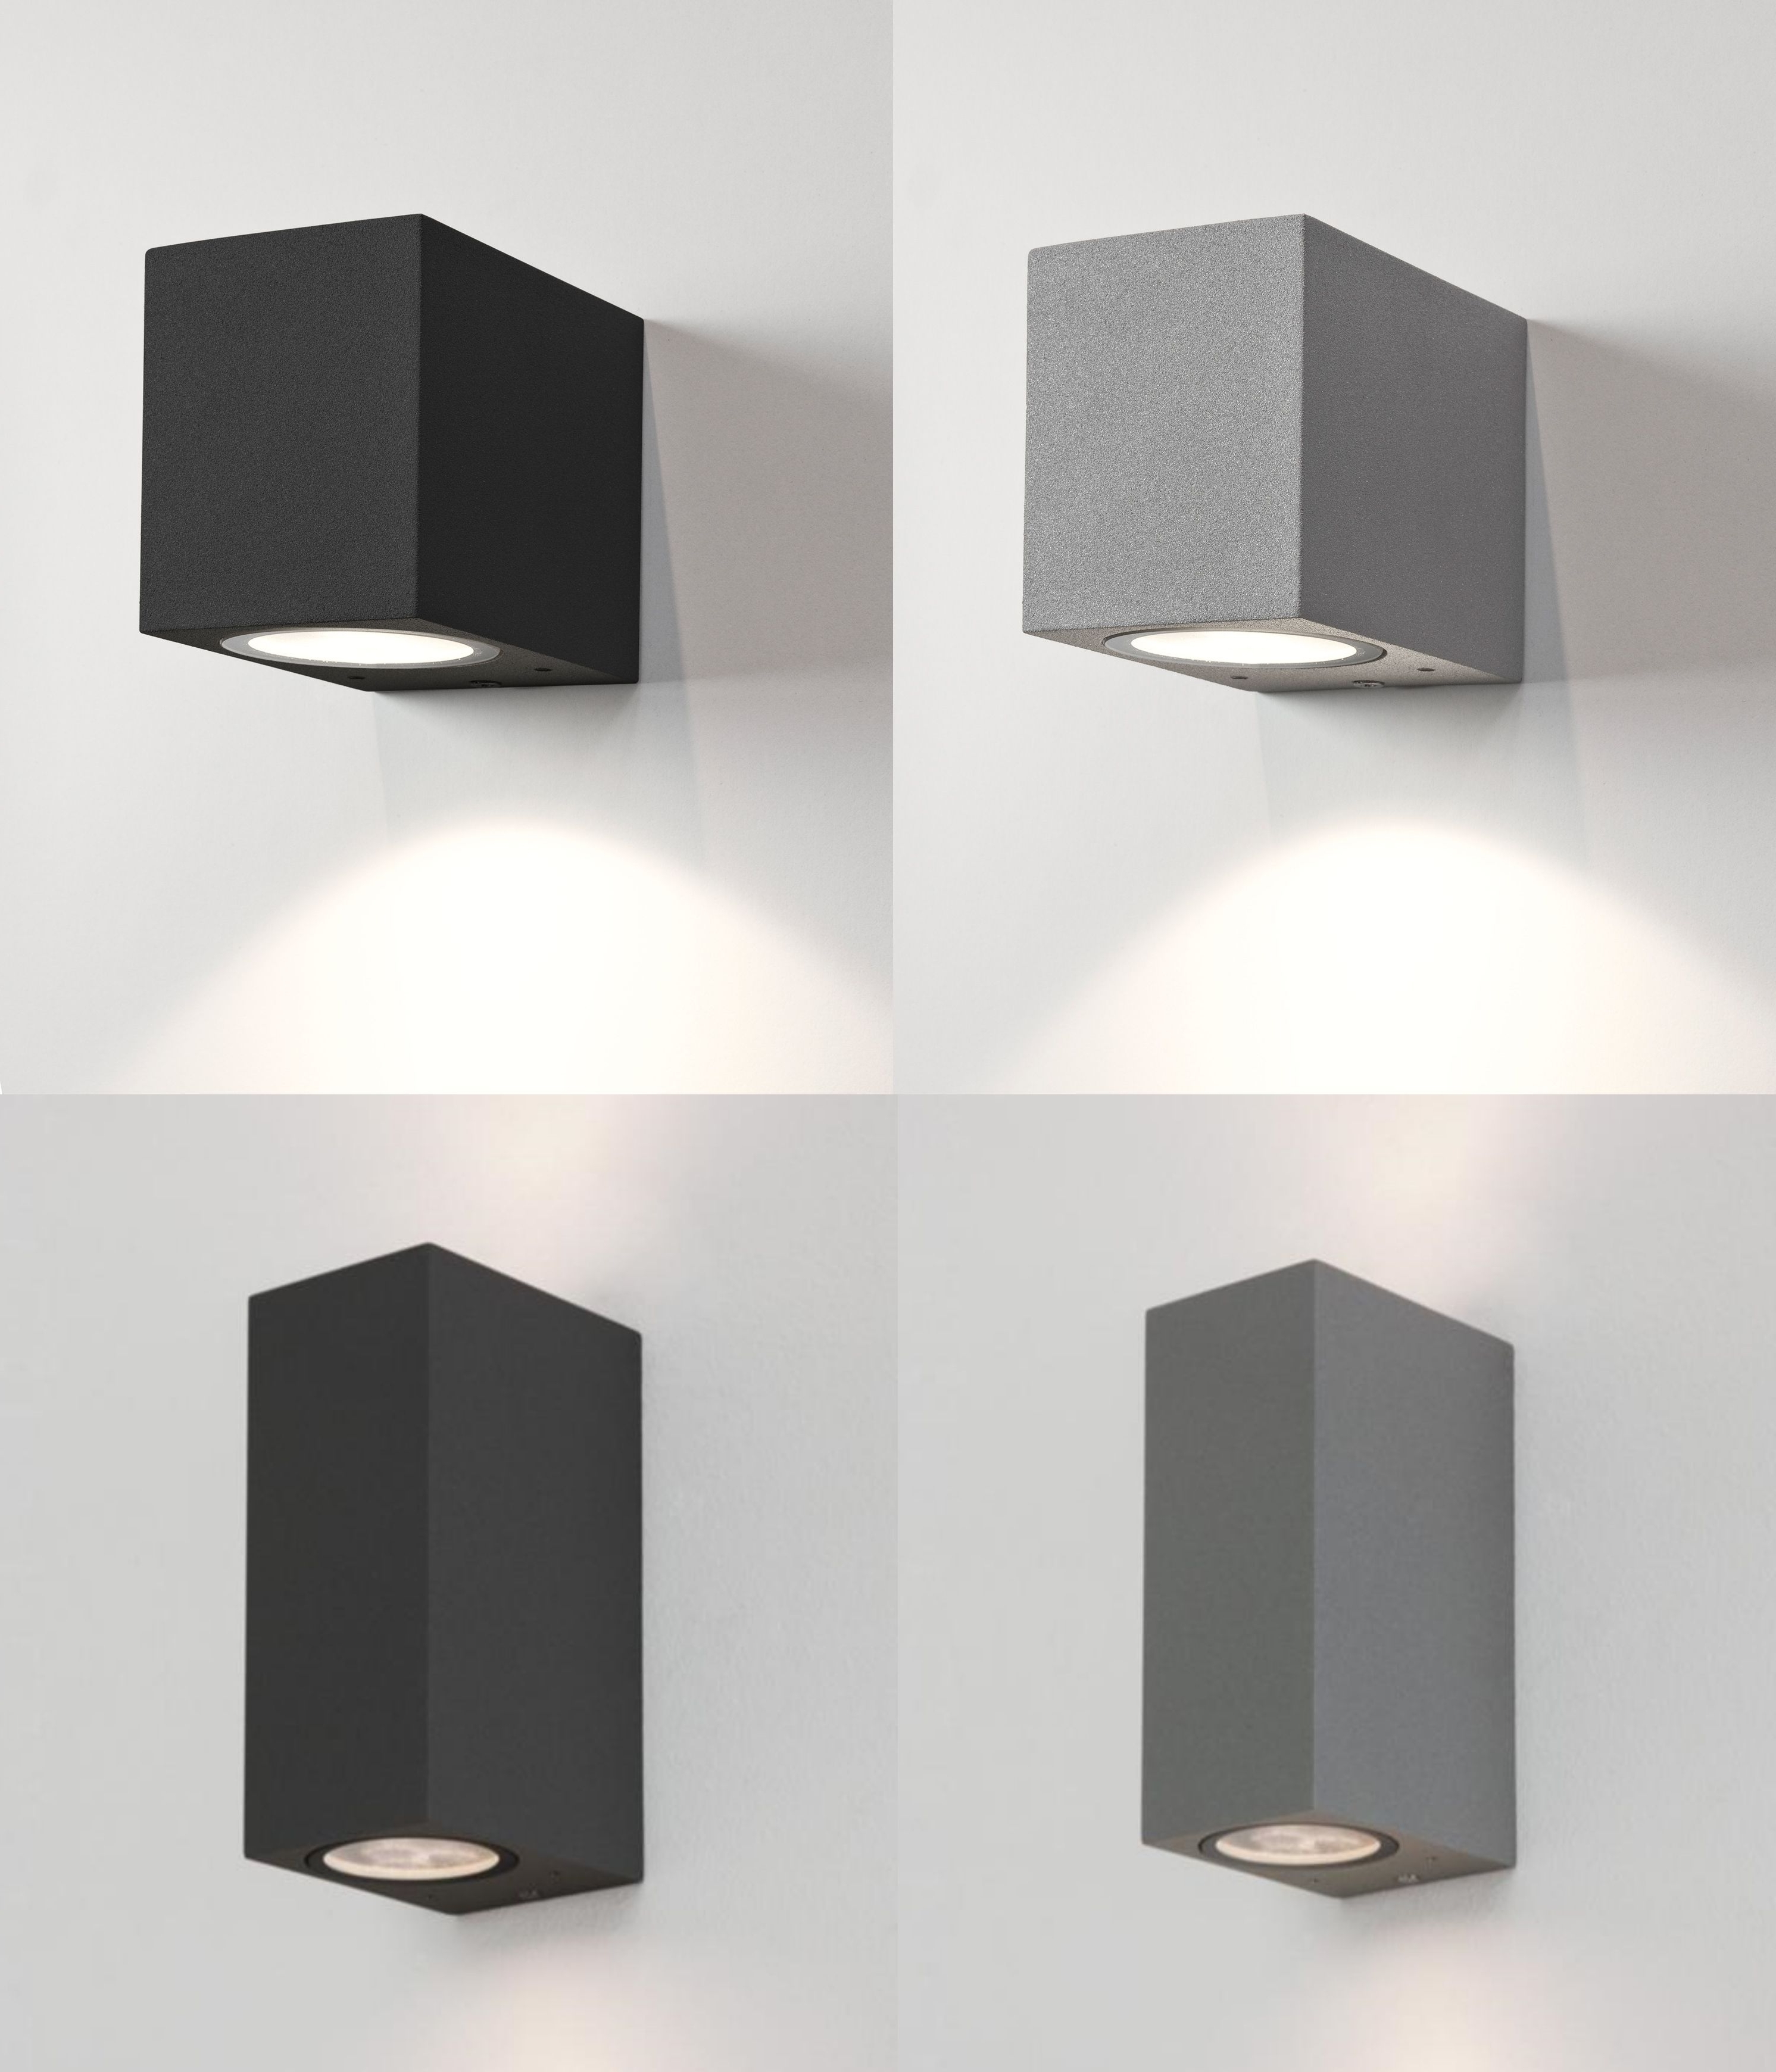 Grey Outdoor Wall Lights Intended For Recent Pinjohn Macbride On Condo Design (View 6 of 20)